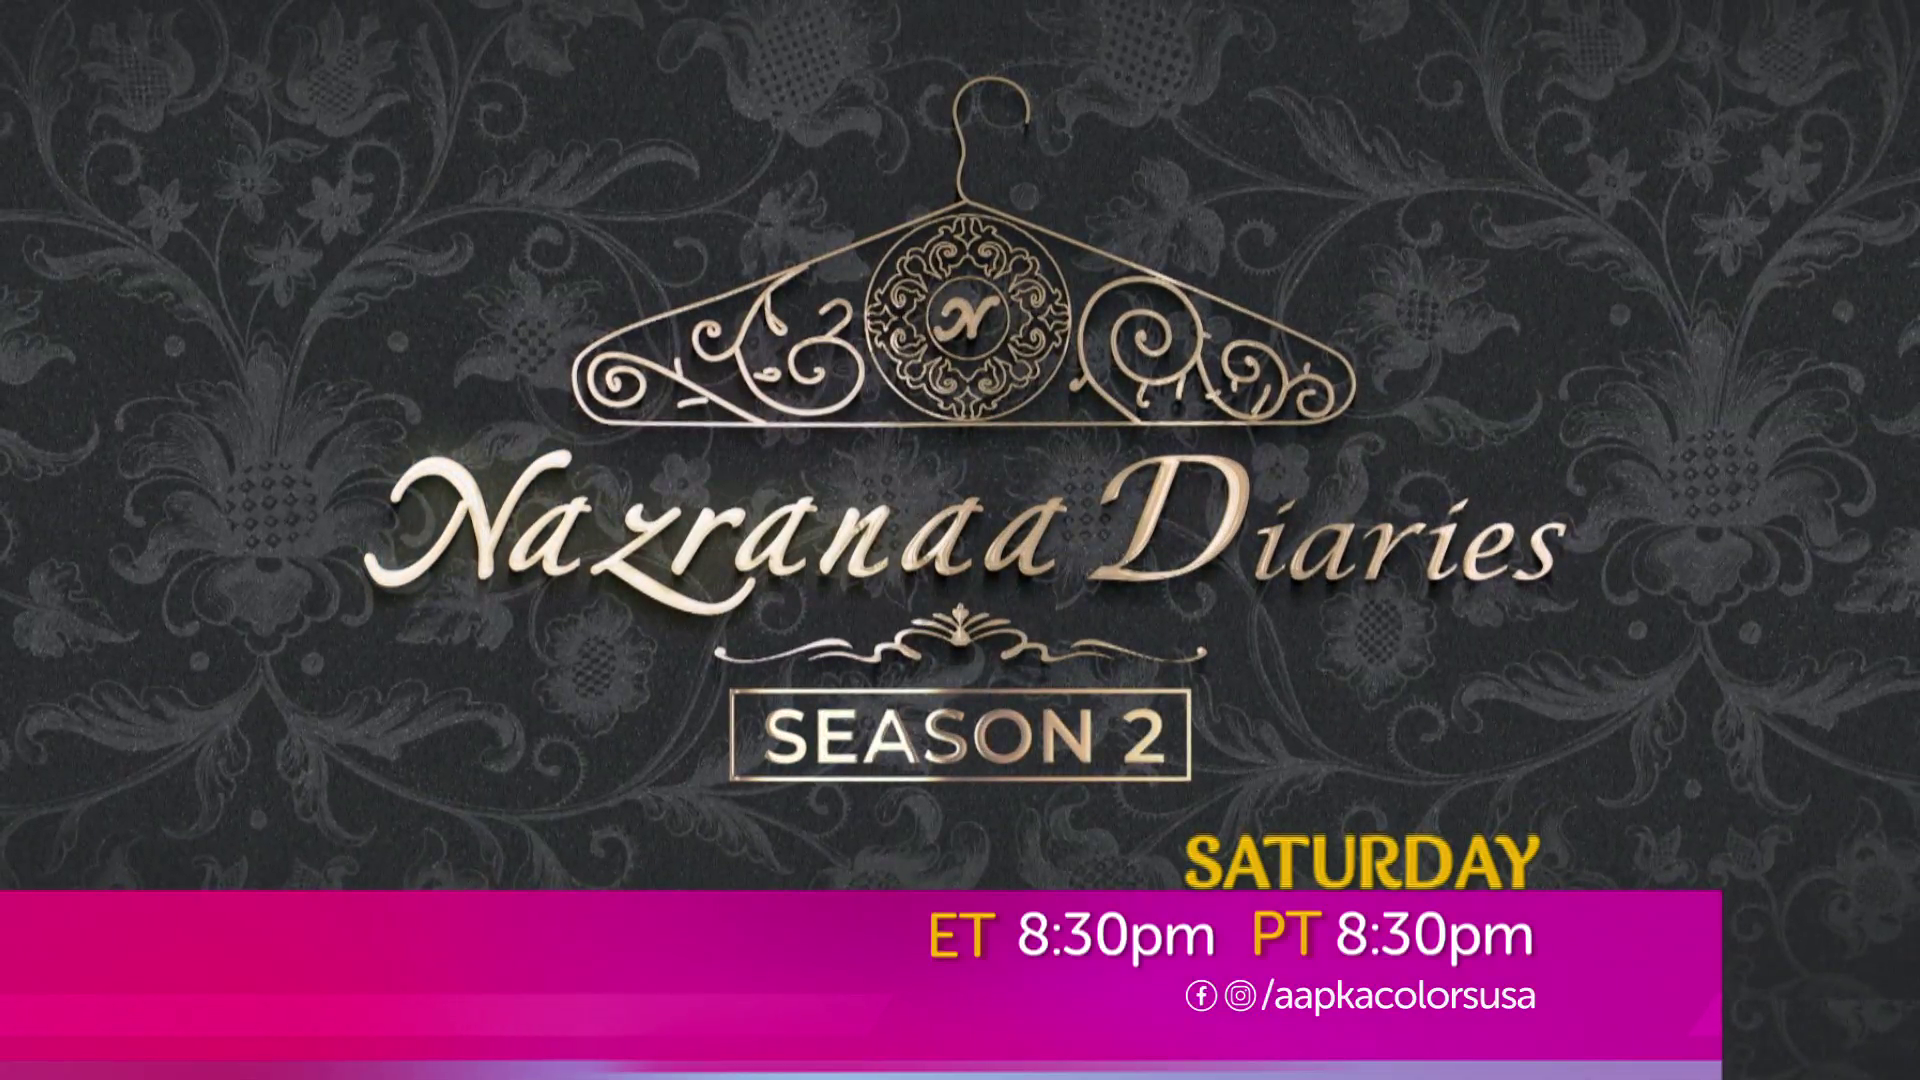 Nazranaa Diaries Season 2 Episode 04